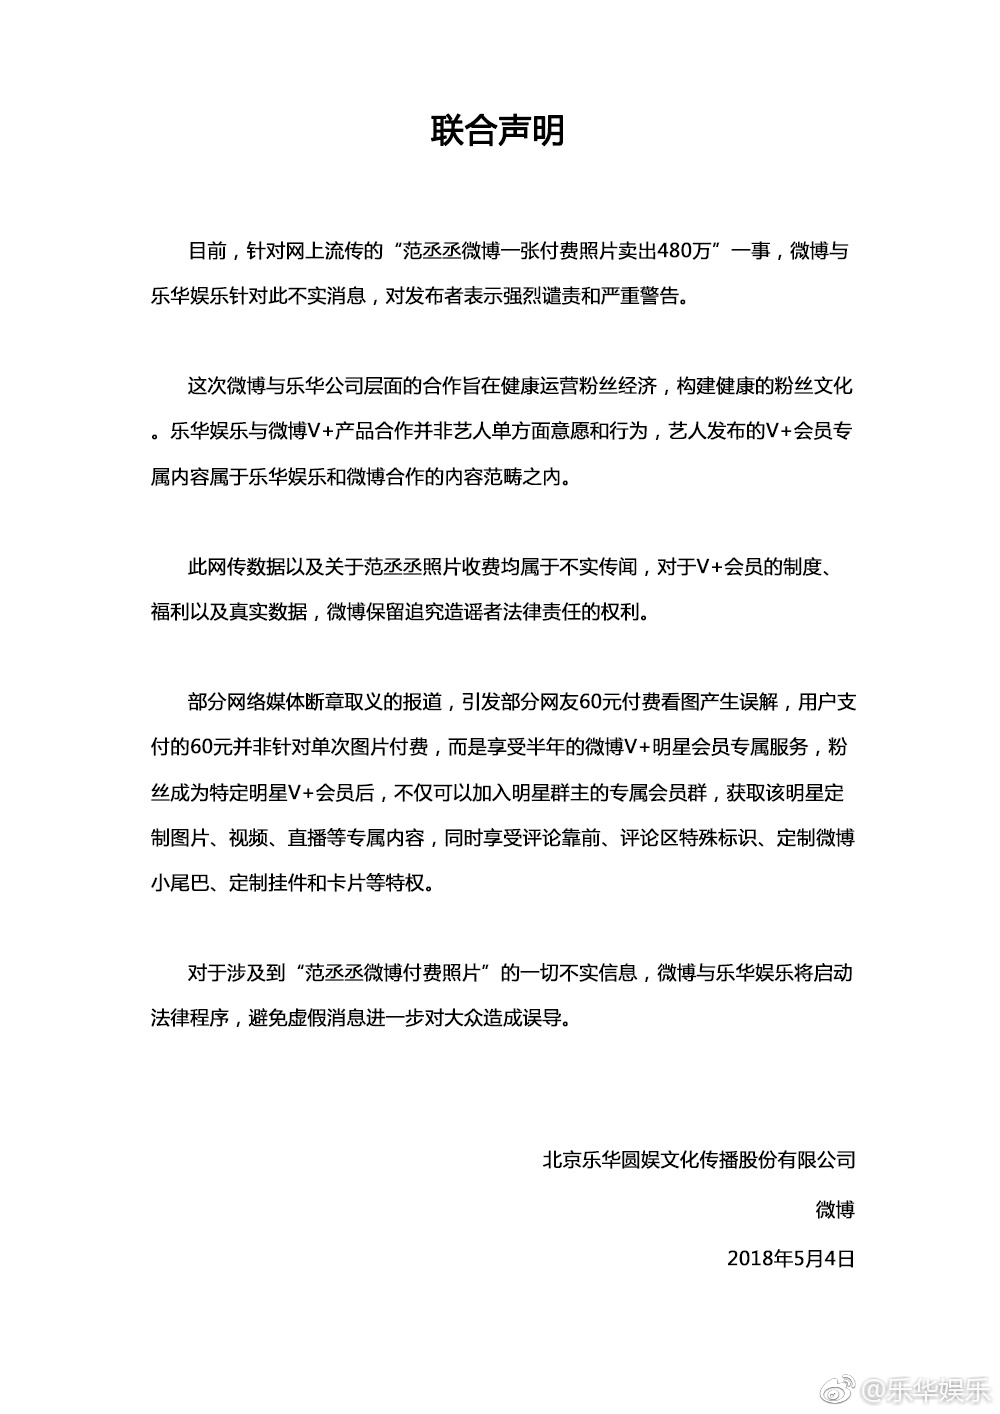 Yue Hua Entertainment Statement on Fan Chengcheng